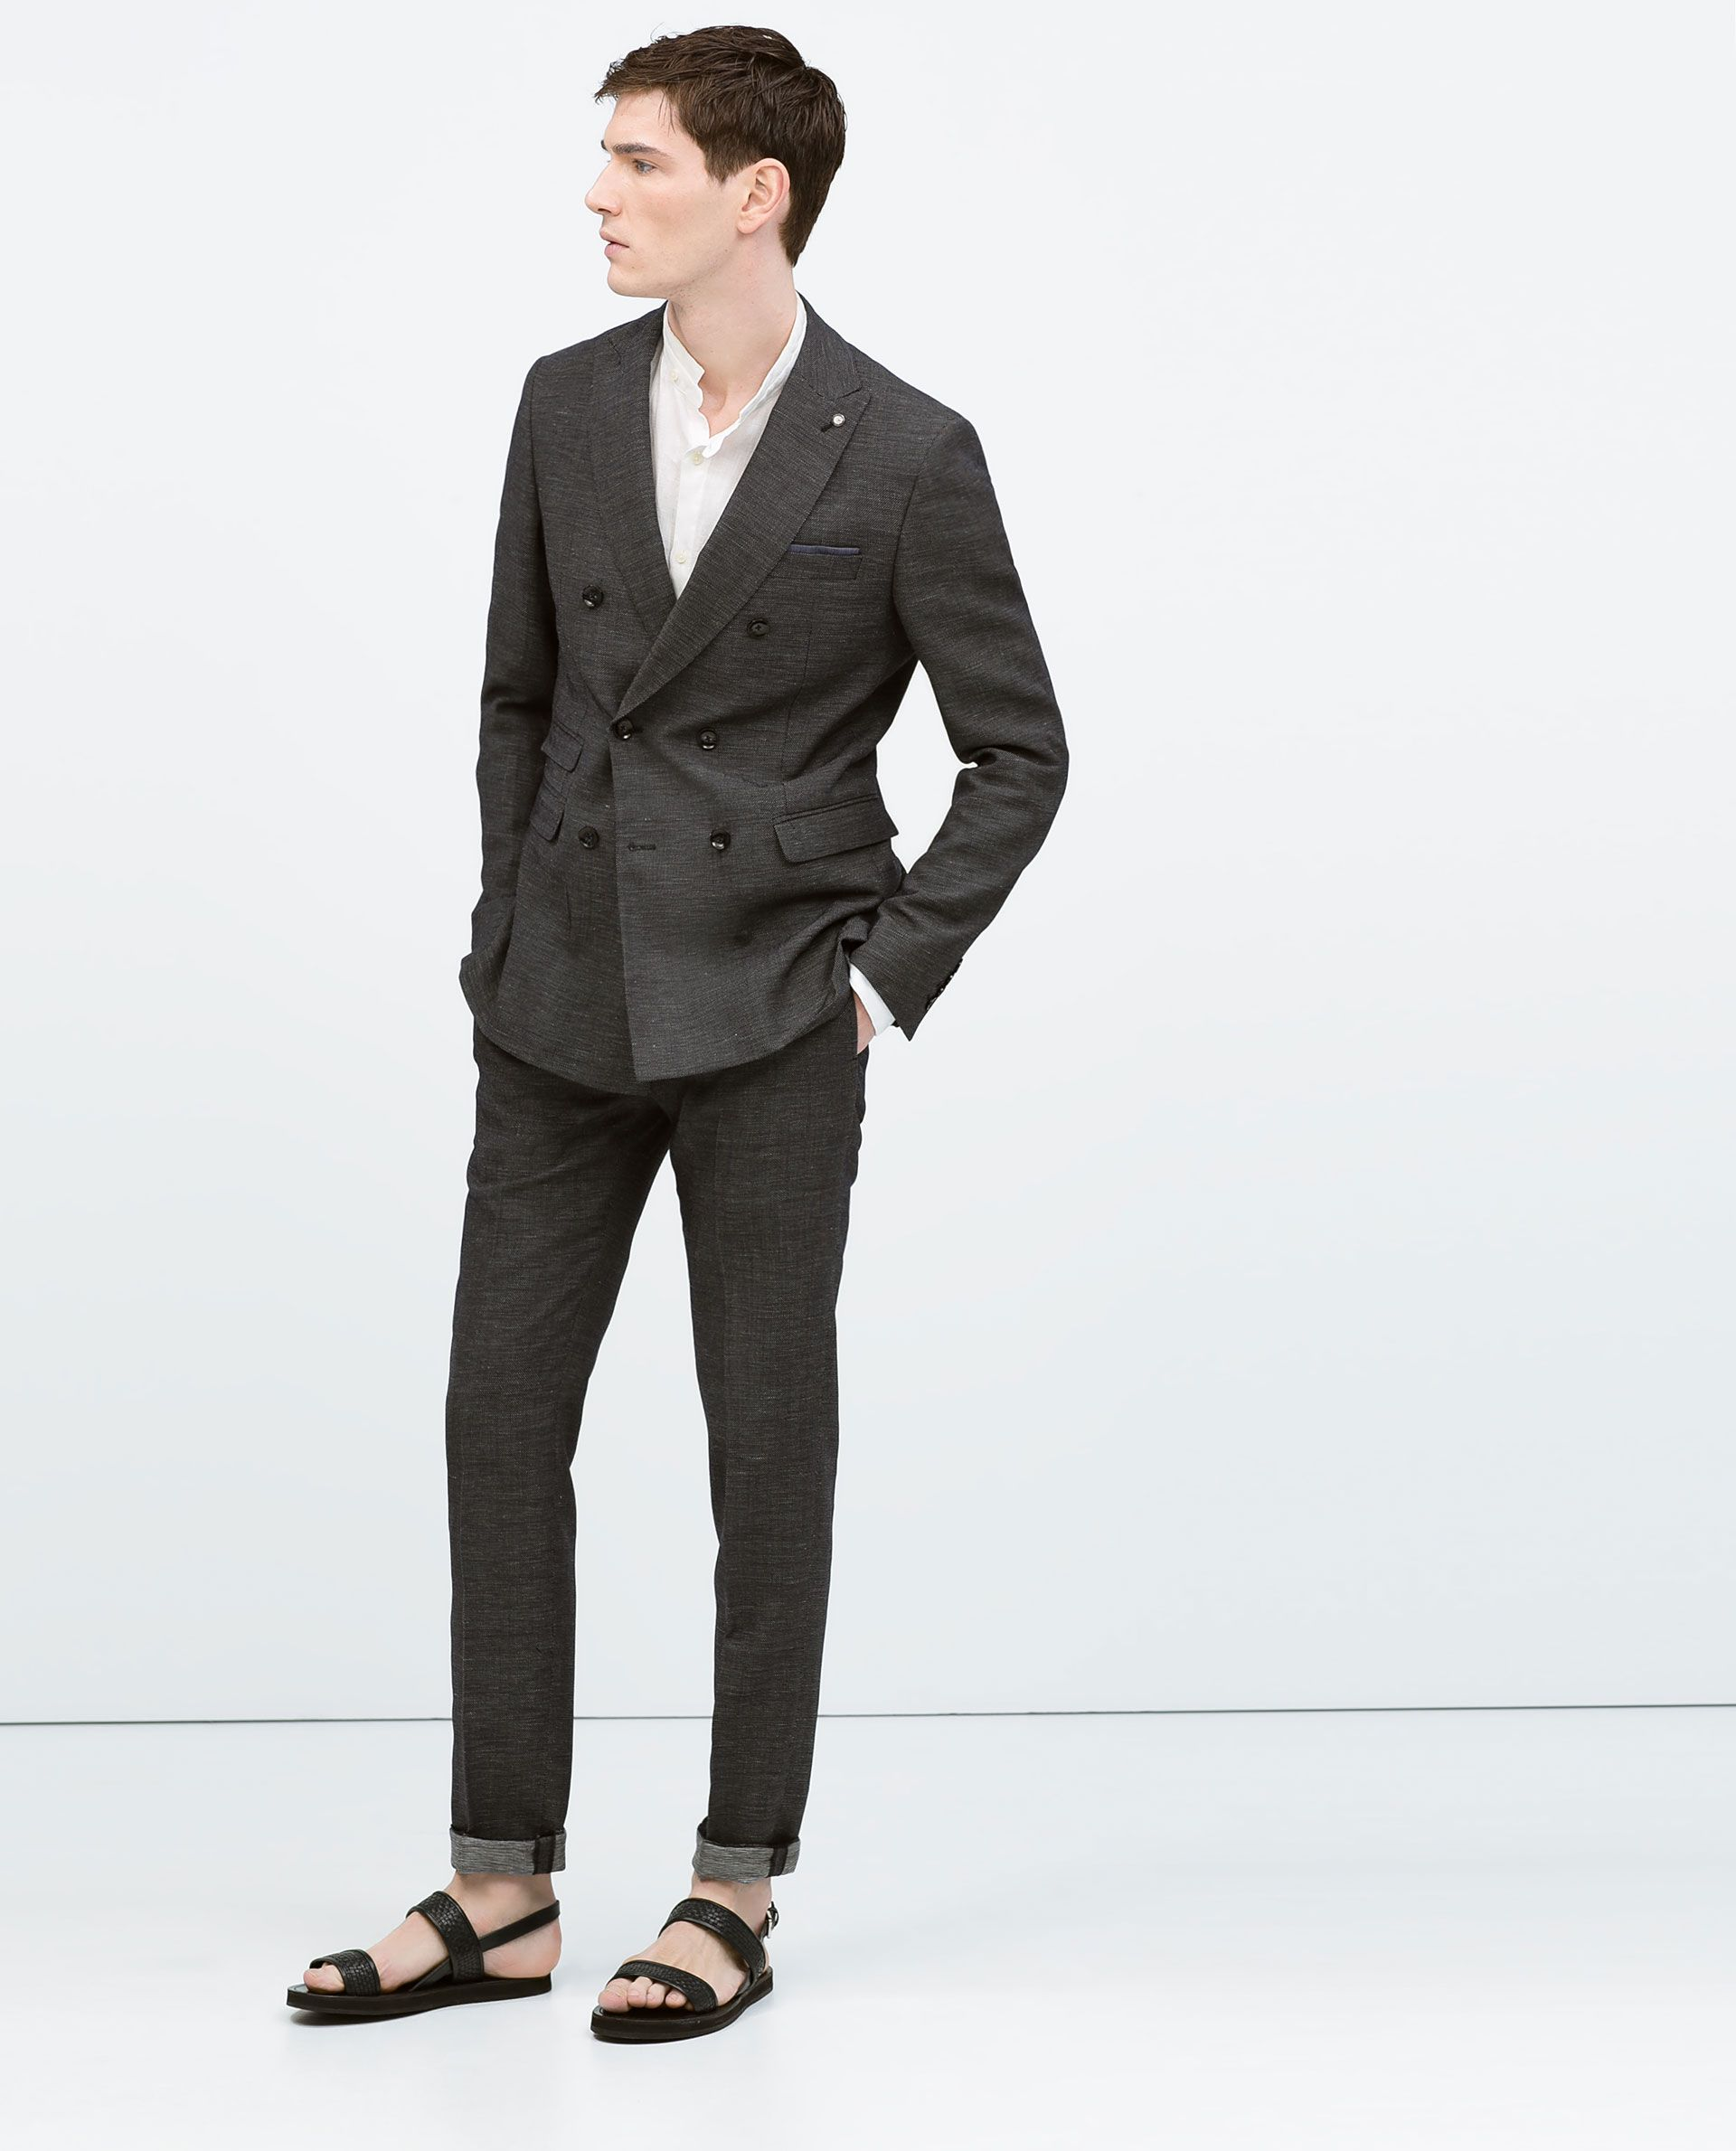 Image 1 of Double breasted suit from Zara | Modern Prep - Gent ...